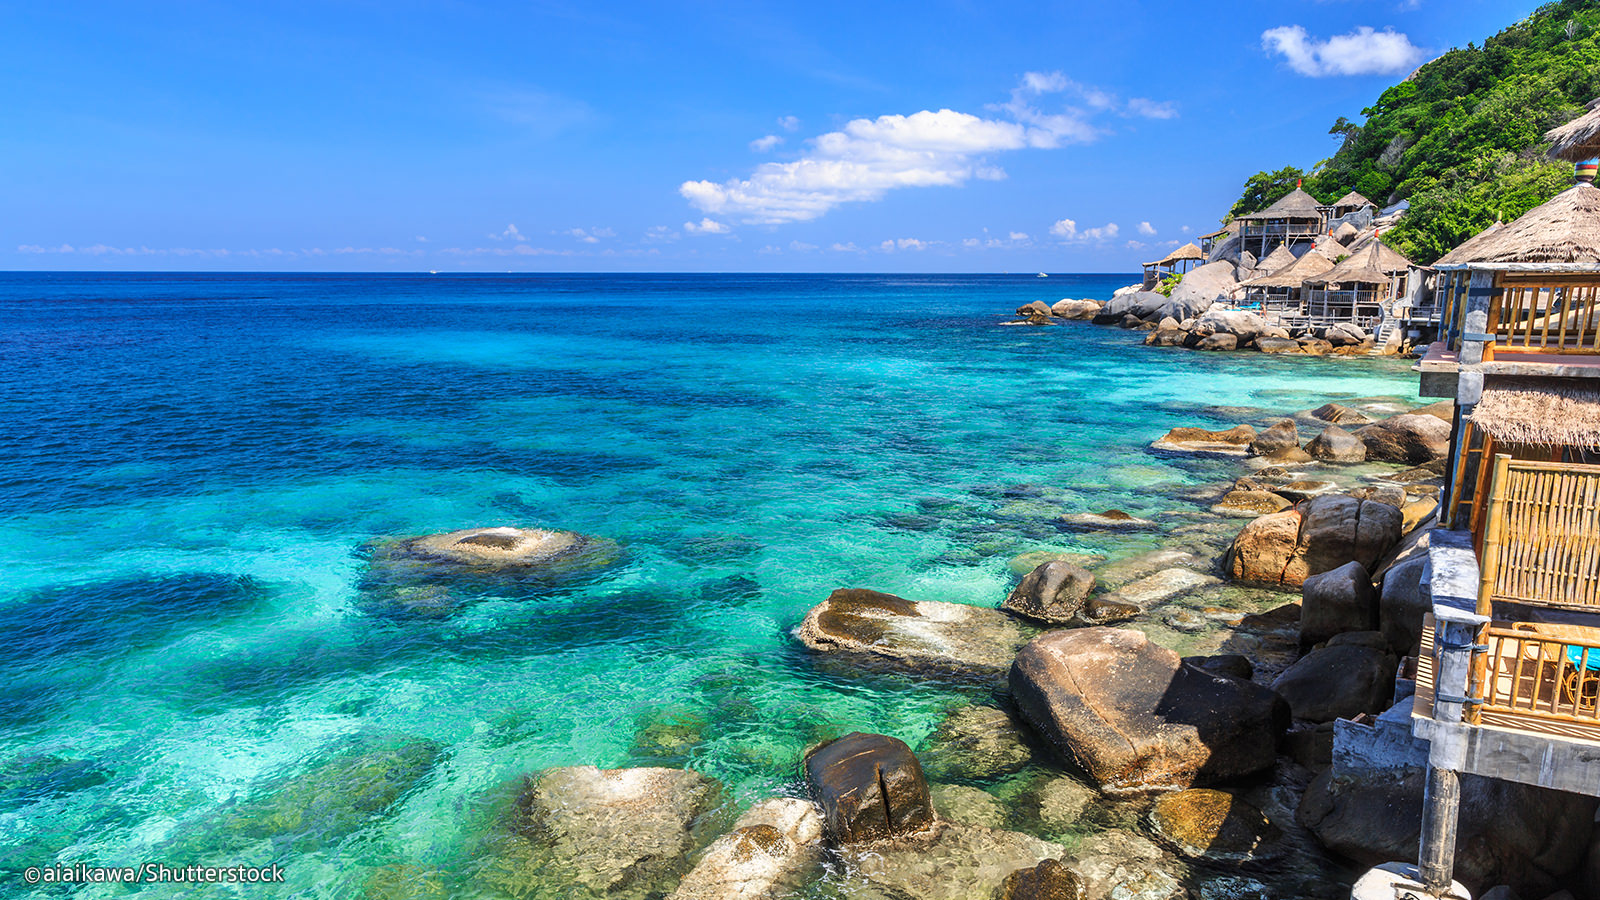 Koh Tao crystal clear water